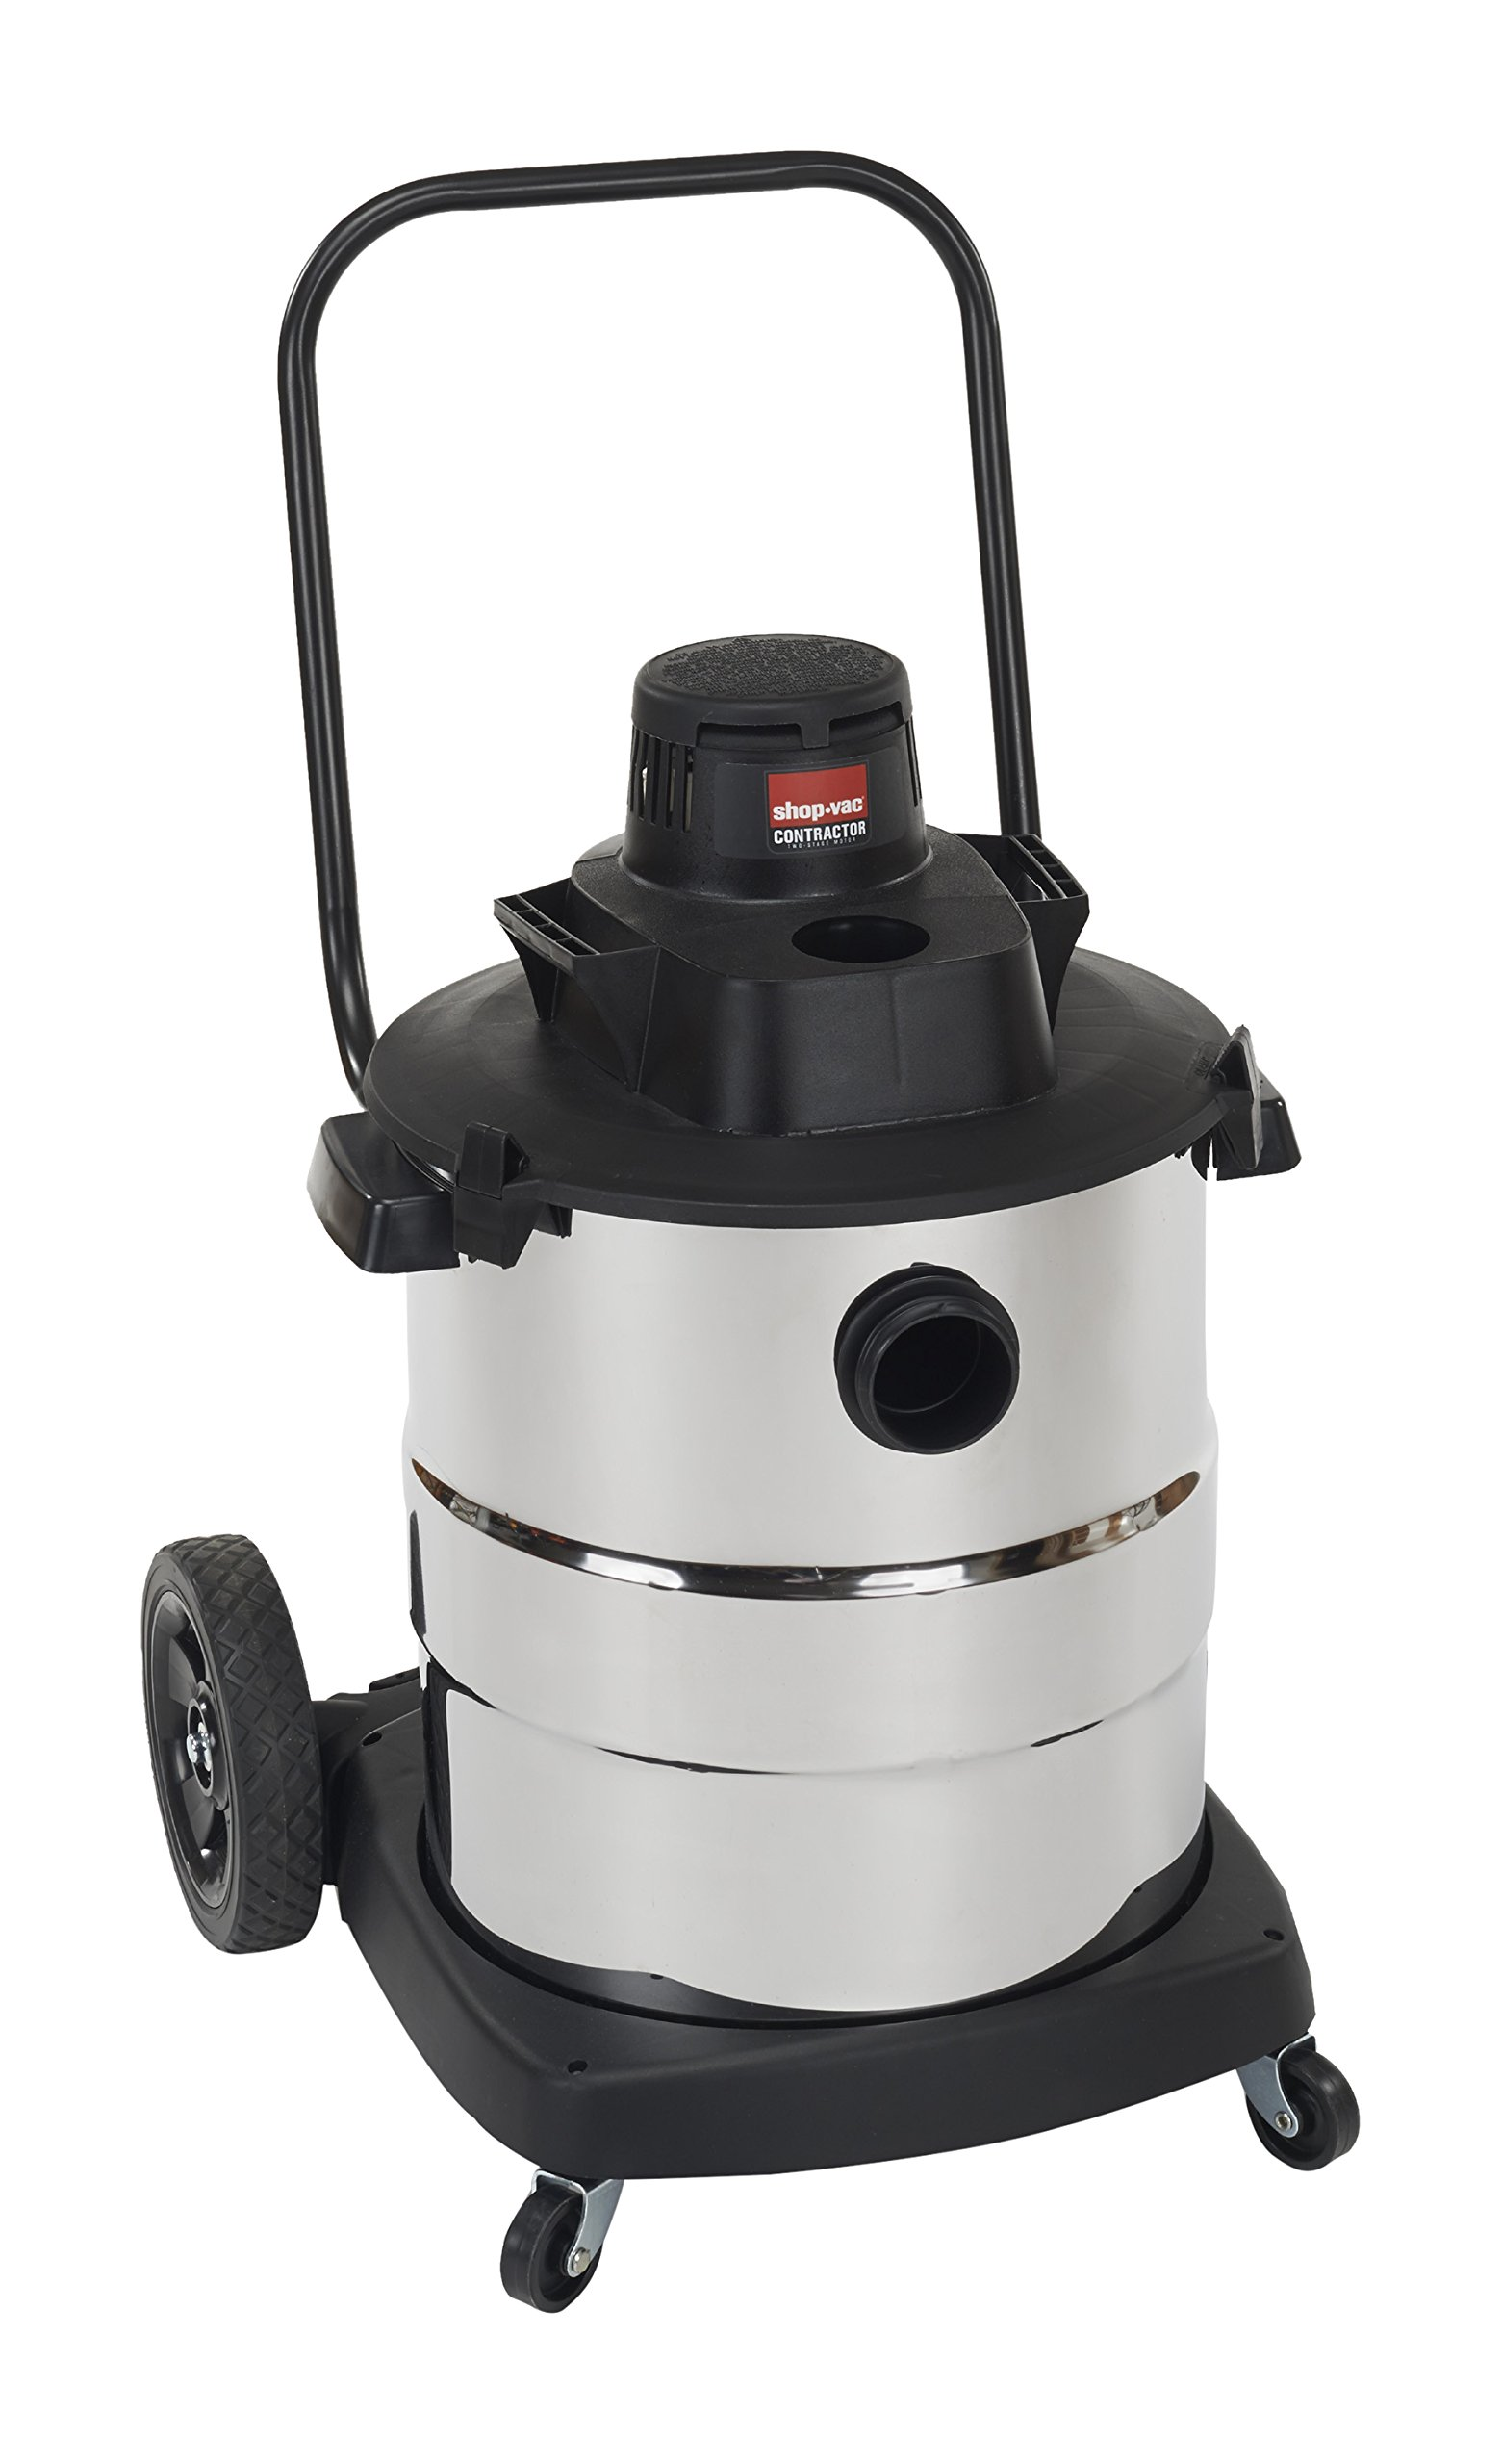 Shop-Vac 6107010 2.0 Peak HP Stainless Steel Wet Dry Vacuum, 10-Gallon